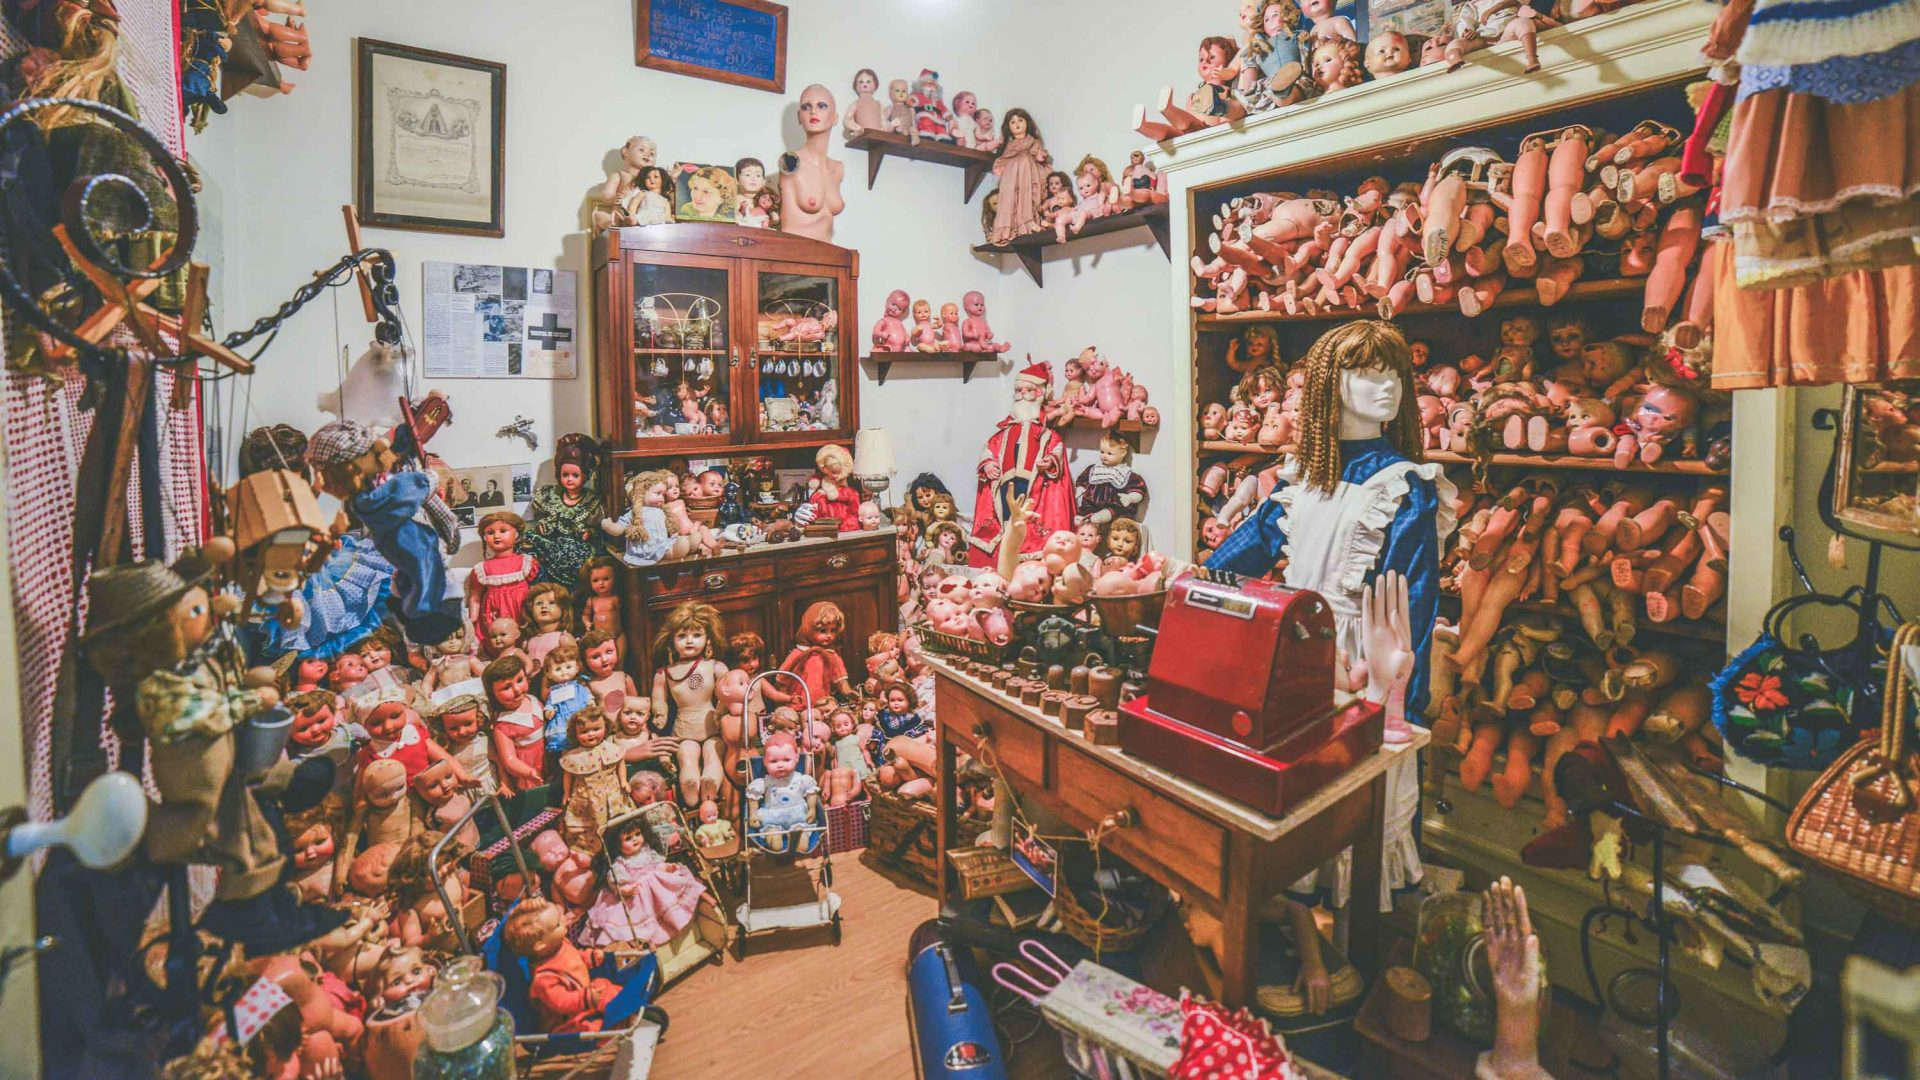 The art of mending memories: Inside the world's oldest surviving doll hospital